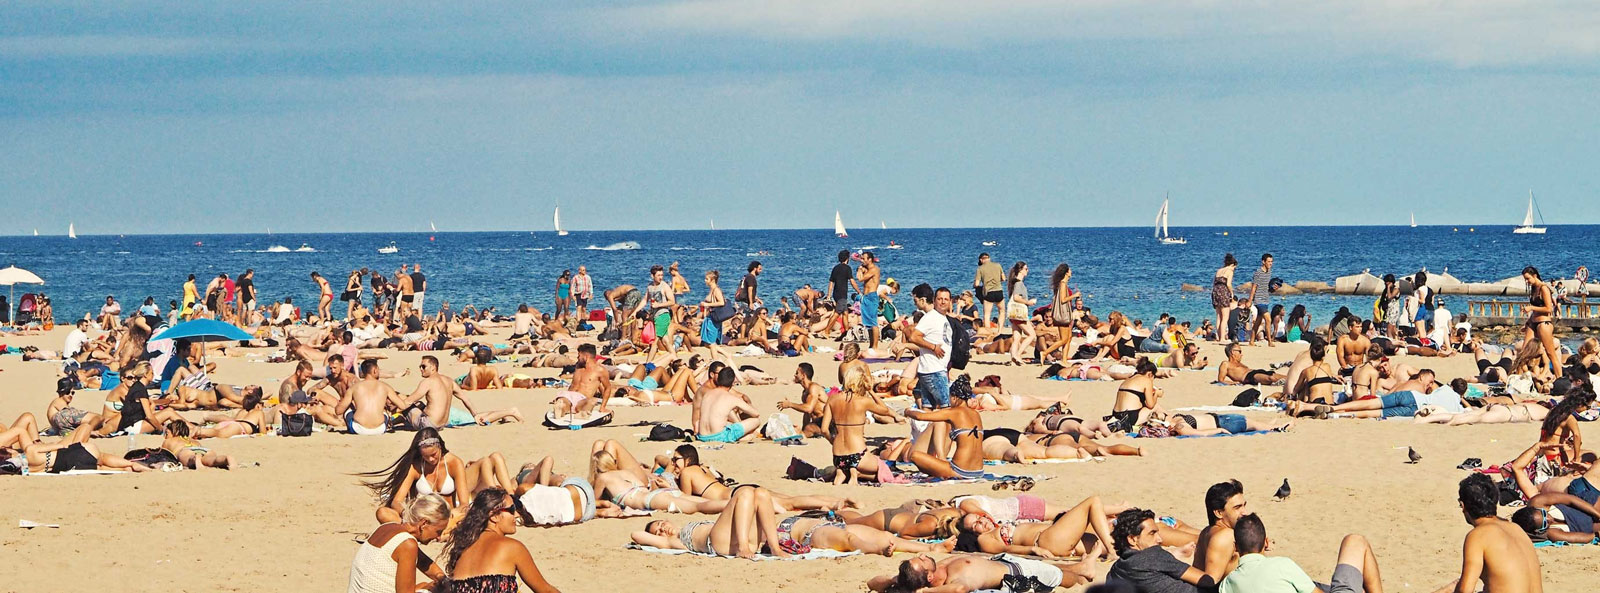 Memorial-Day-Crowded-Beach